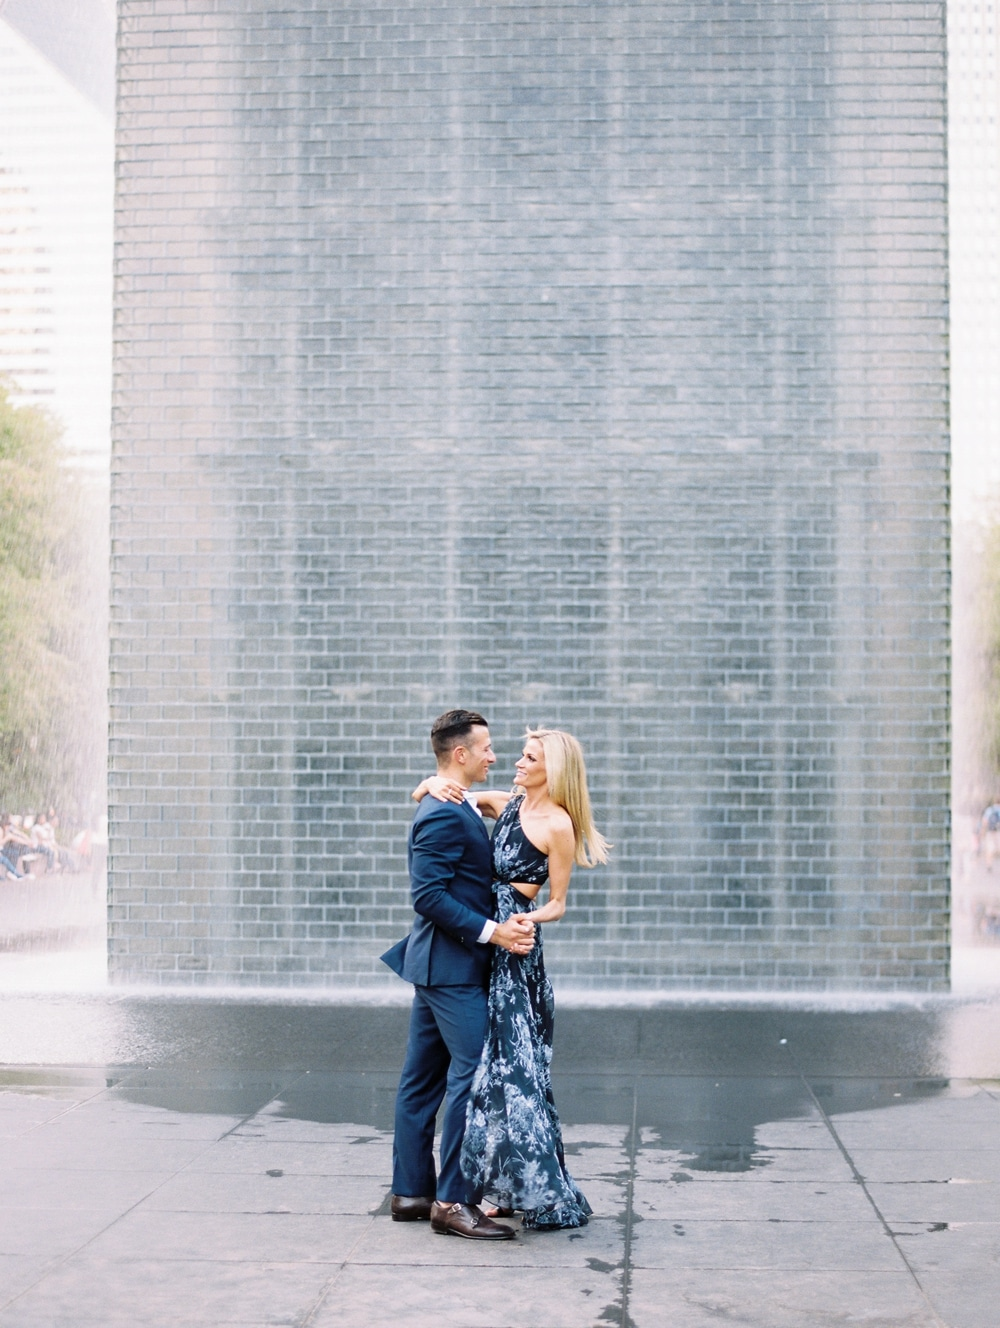 kristin-la-voie-photography-Chicago-Wedding-Photographer-Art-Institute-Lurie-Garden-Millennium-Park-26